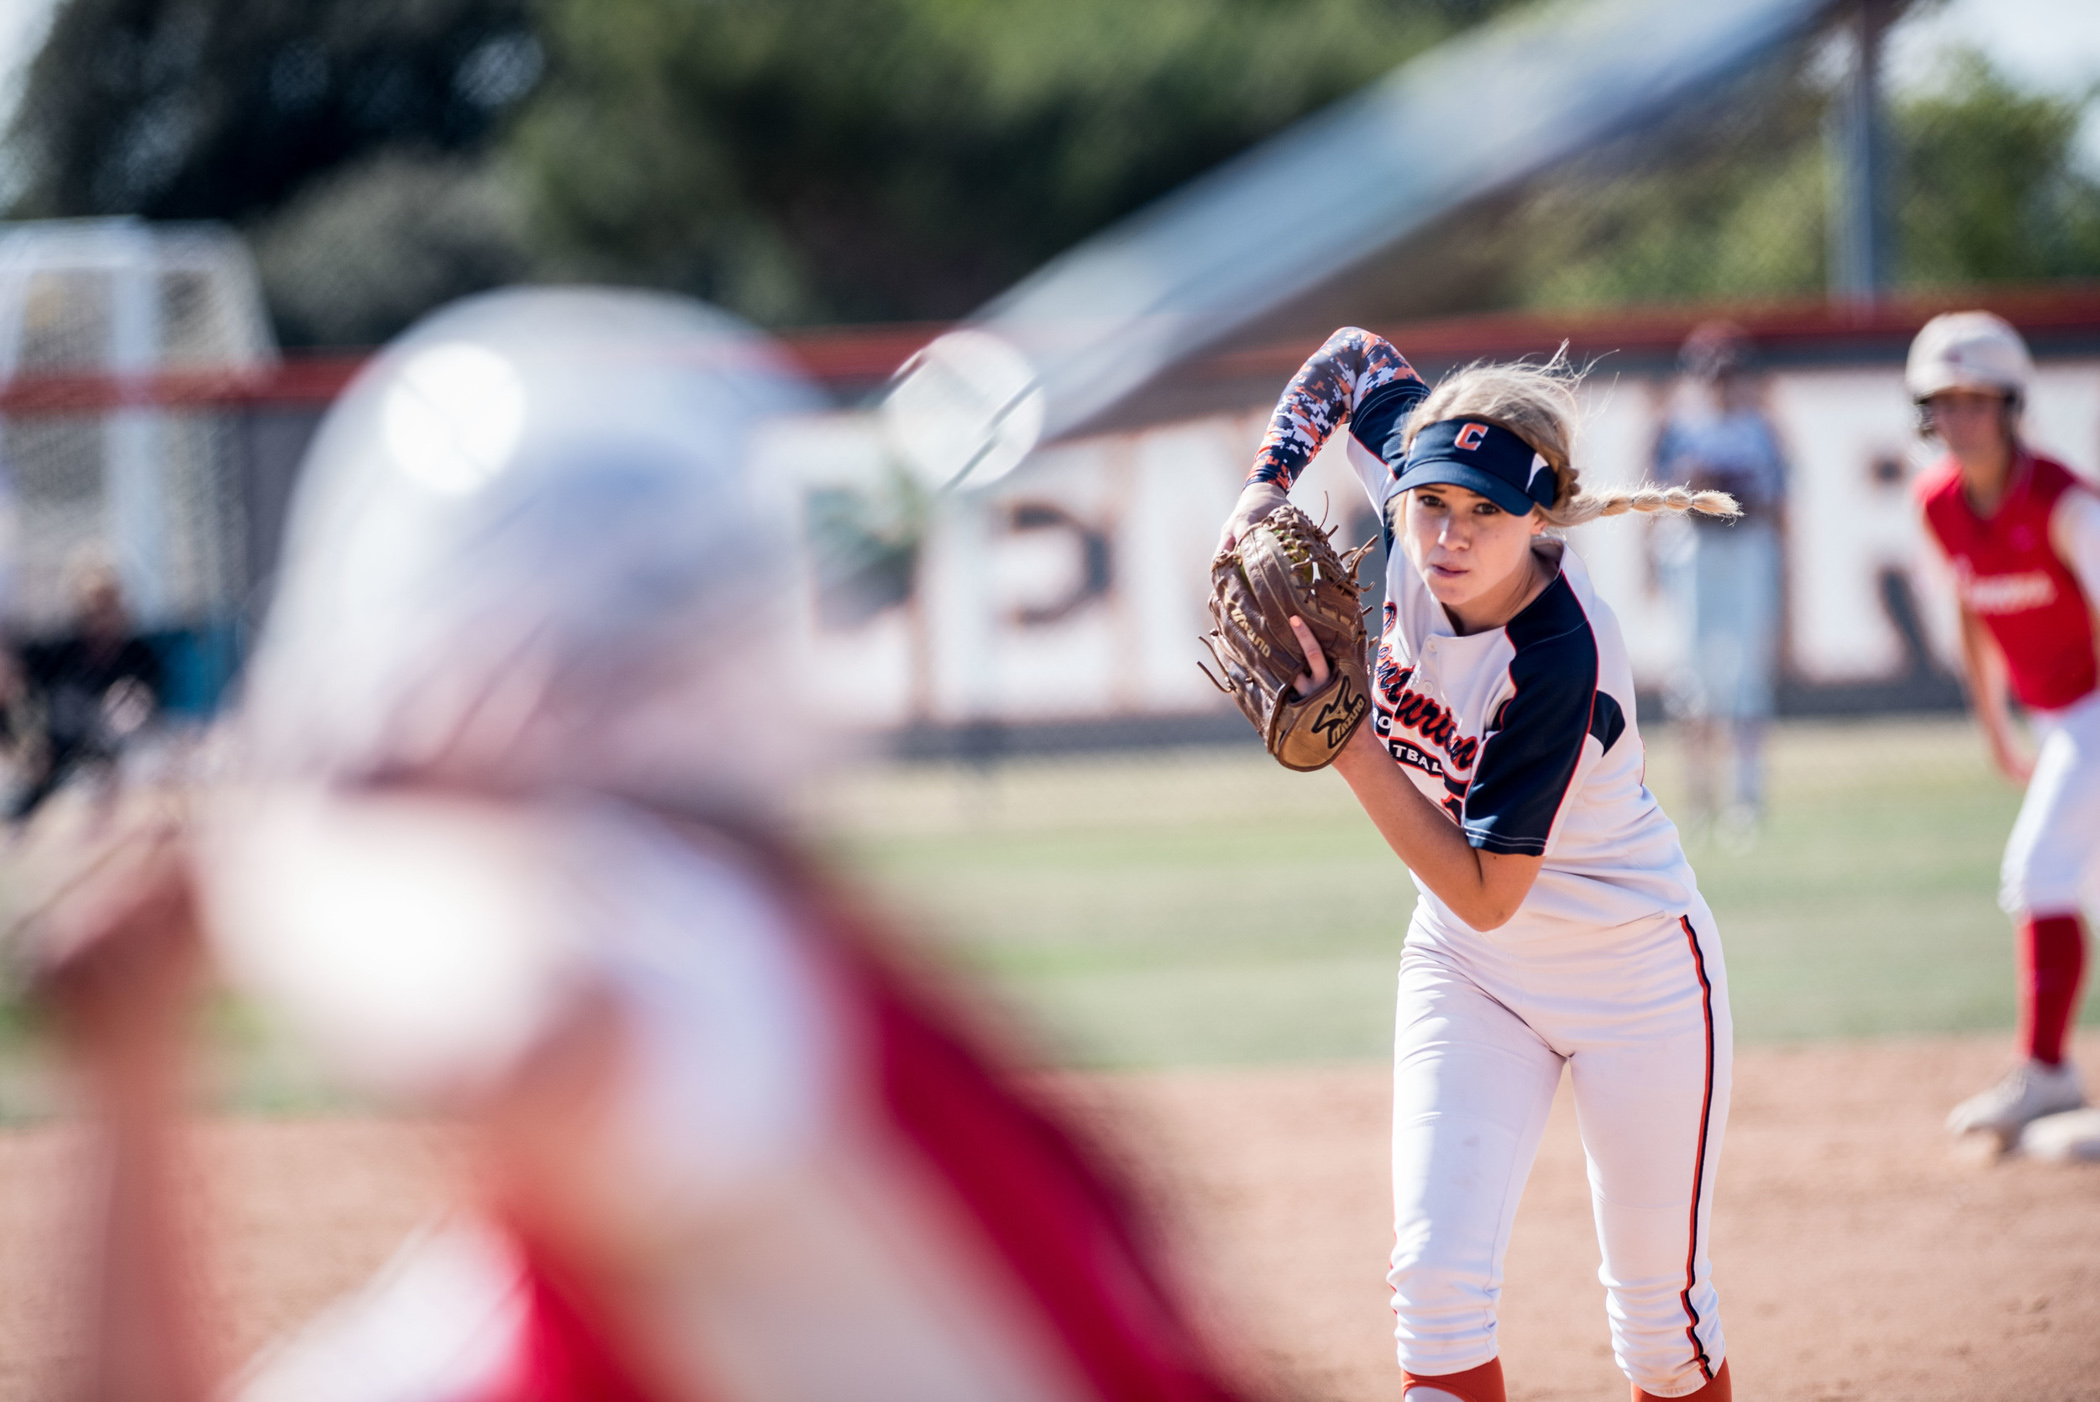 Cypress High School pitcher Maddy Byrd prepares to deliver a pitch against Orange Lutheran during the second round of the CIF-SS playoffs on Tuesday, May 24, 2016 in Cypress, Calif.(Michael Ares, Contributing Photographer, Orange County Register)